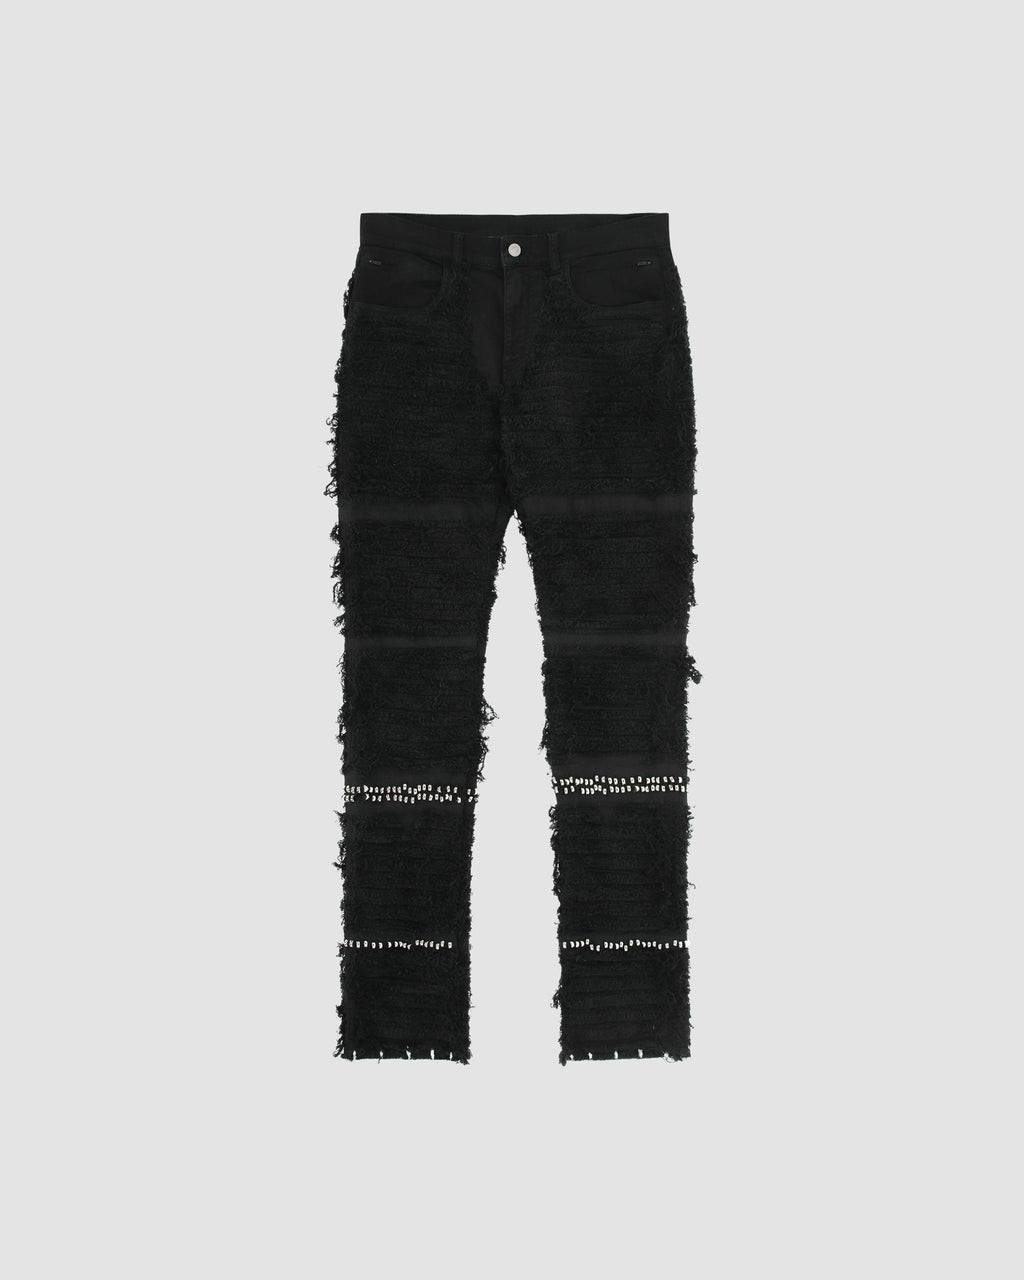 STUDDED BLACKMEANS 6 POCKET JEAN